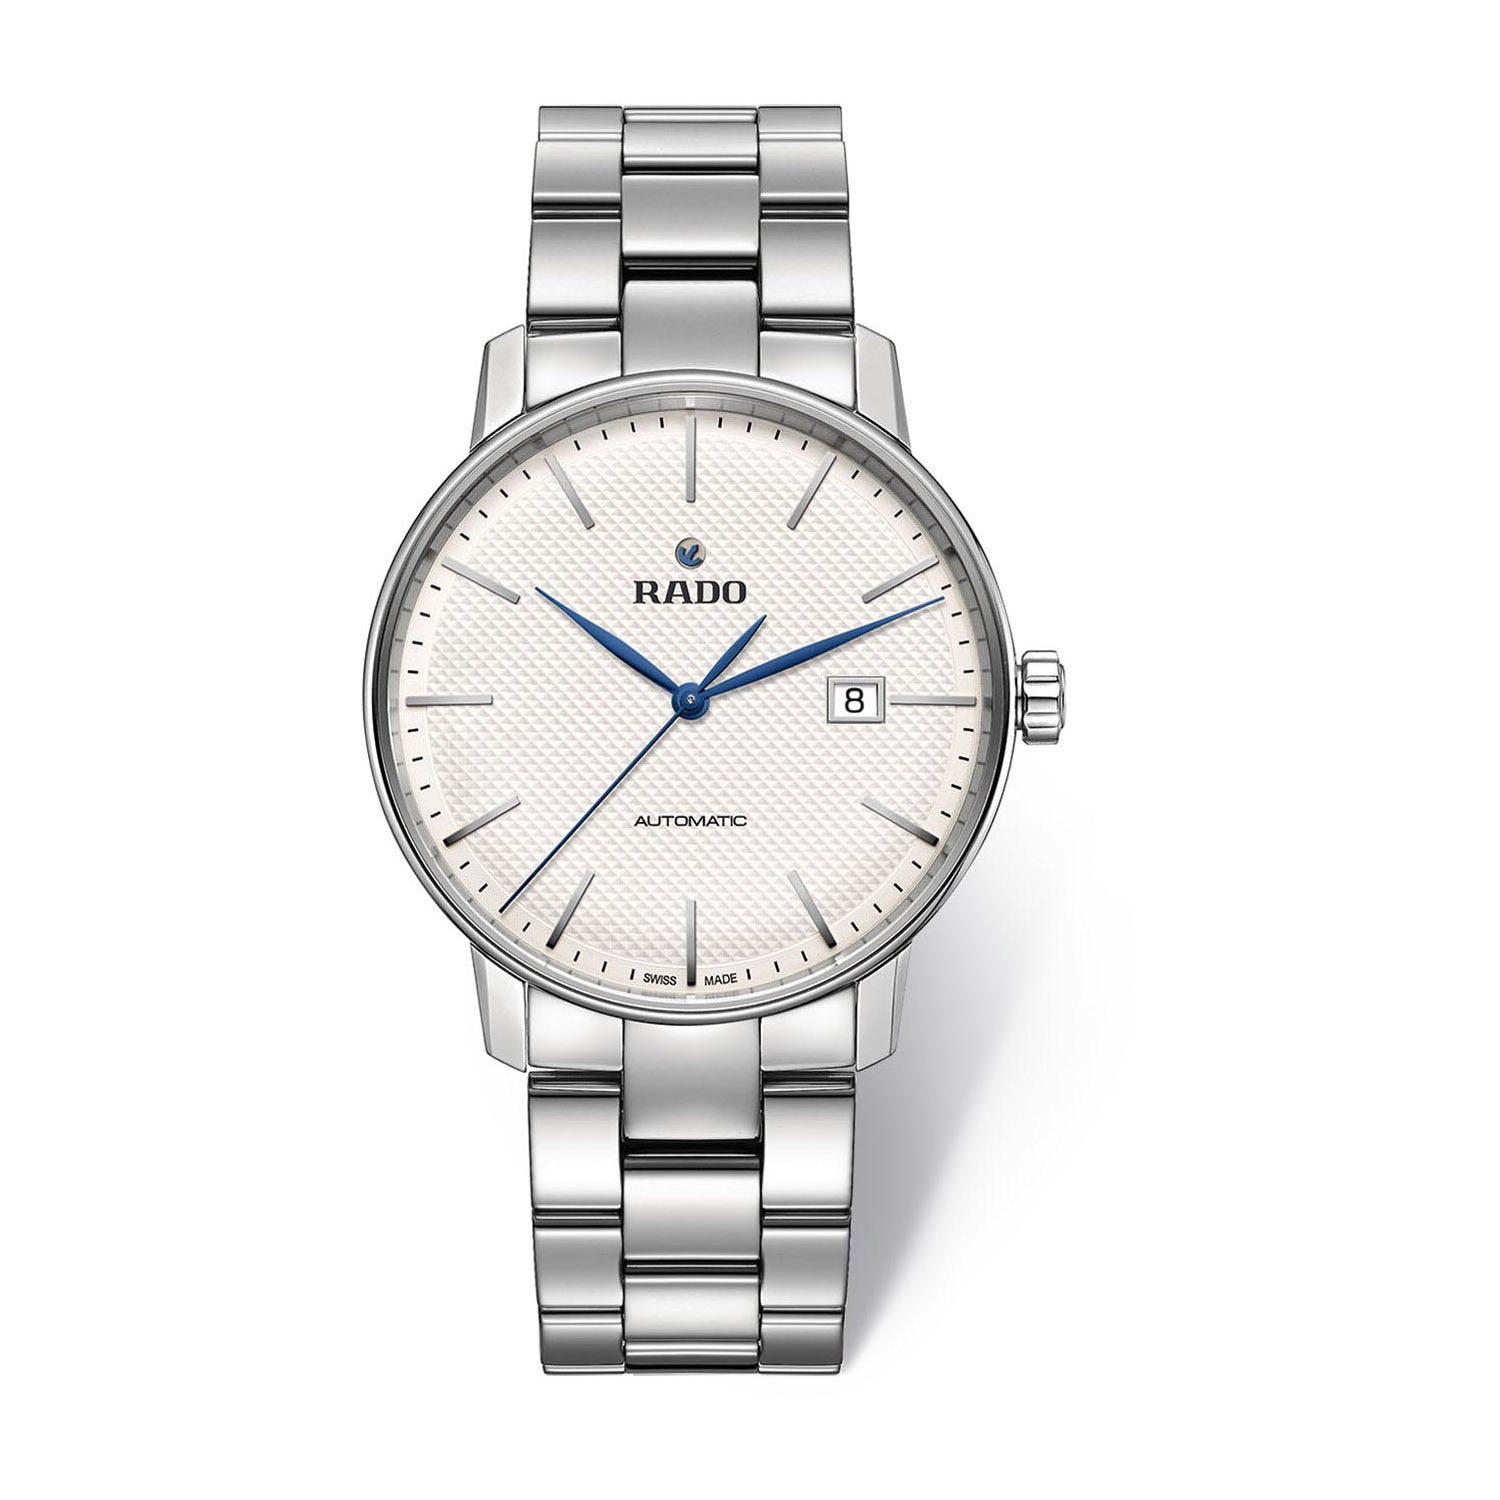 Rado Couple Classic men's automatic stainless steel watch